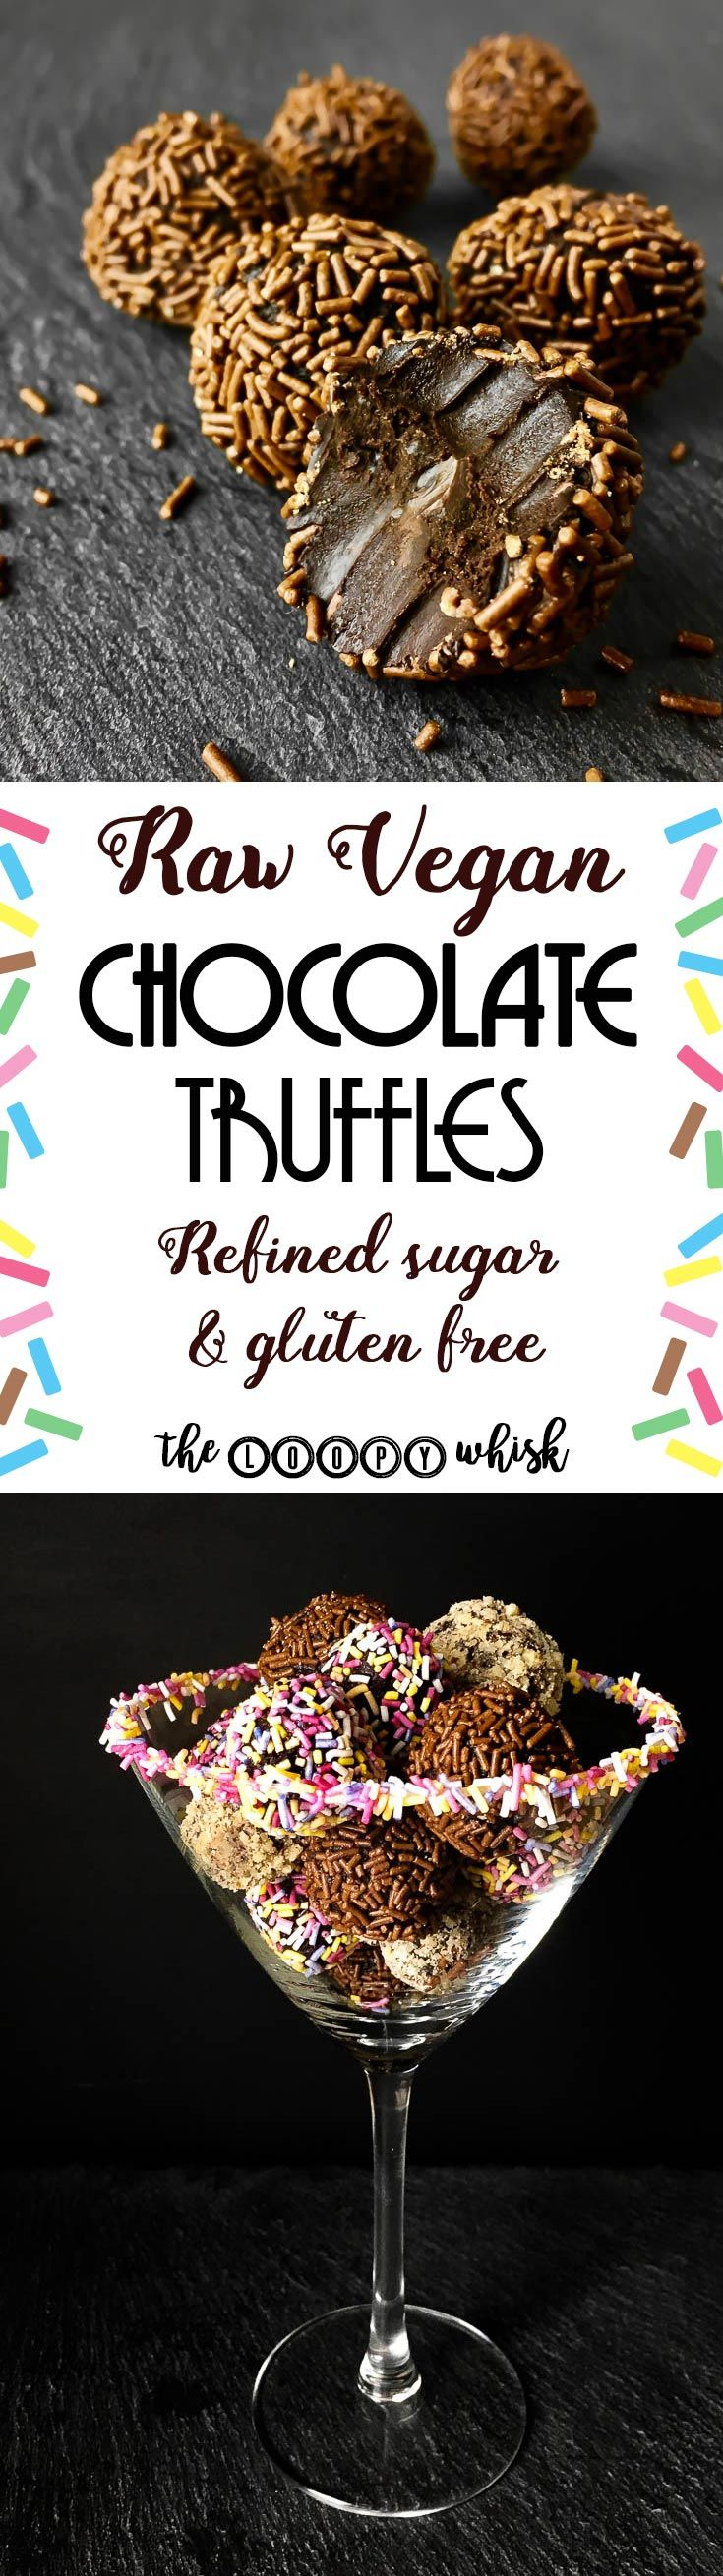 Raw Vegan Chocolate Truffles - A wonderfully simple recipe for wonderfully chocolate-y melt-in-the-mouth taste explosions known as raw vegan chocolate truffles. As an added bonus, these lovelies are a